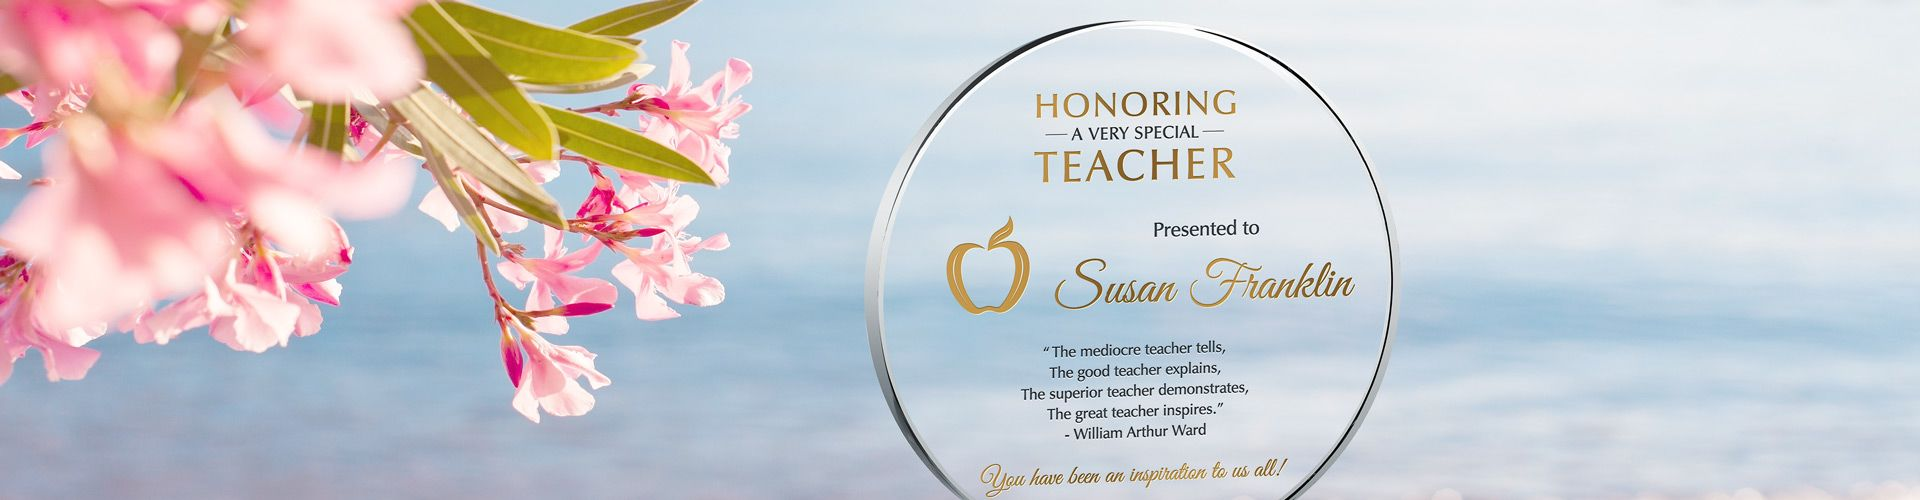 Teacher Appreciation Gift Plaques & Wording Ideas